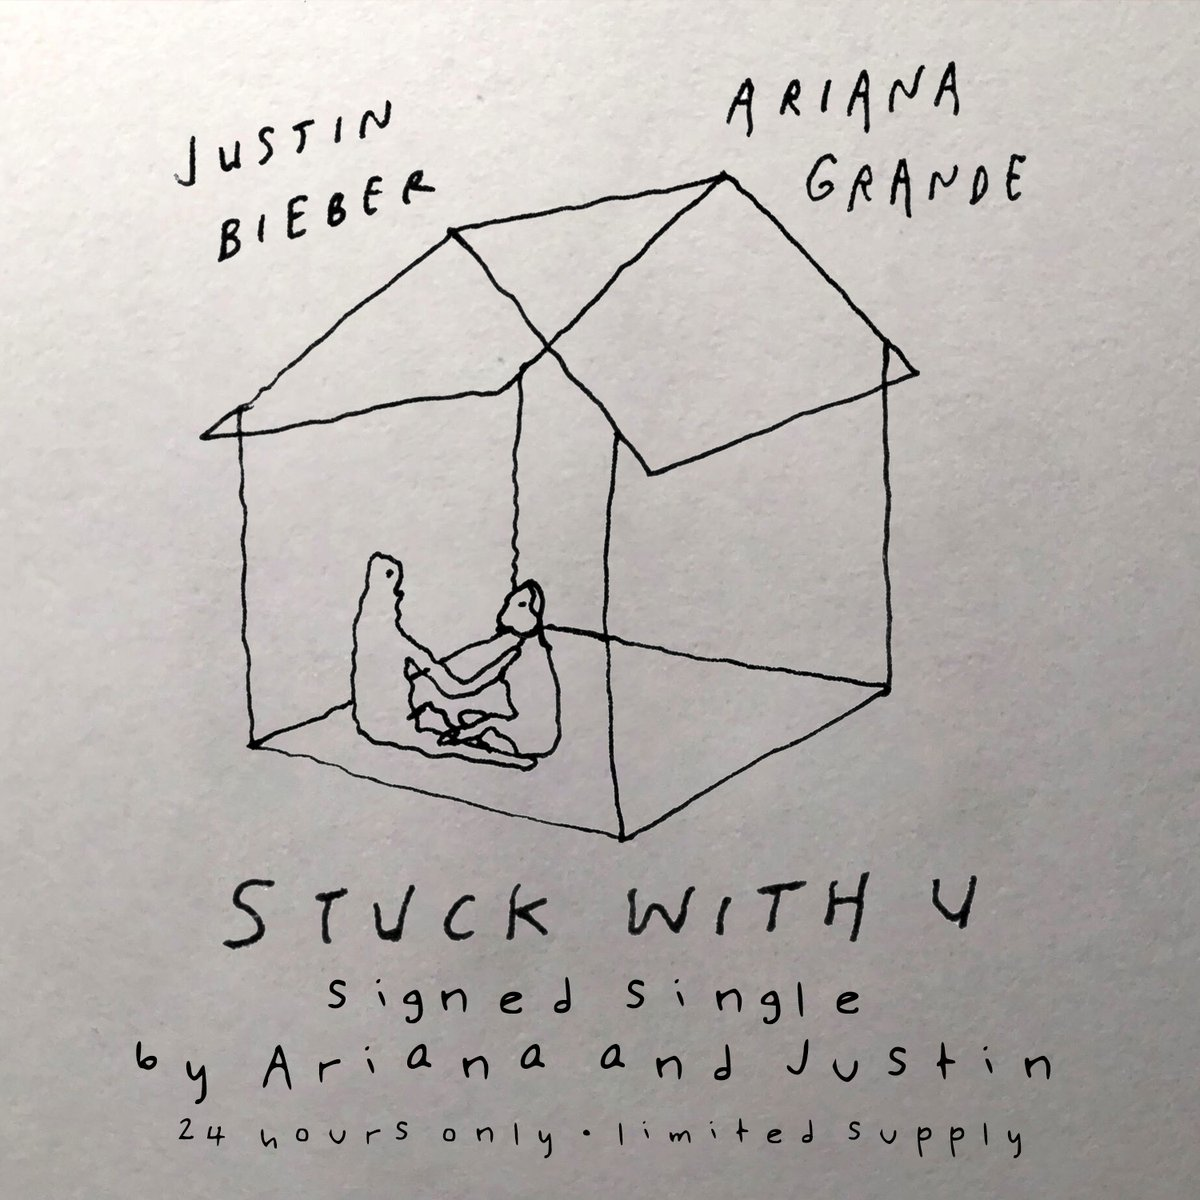 #StuckwithU signed single by Justin & Ari   24 hours only. Limited supply https://t.co/7LmDa0Rh8n https://t.co/69ATYb3wia